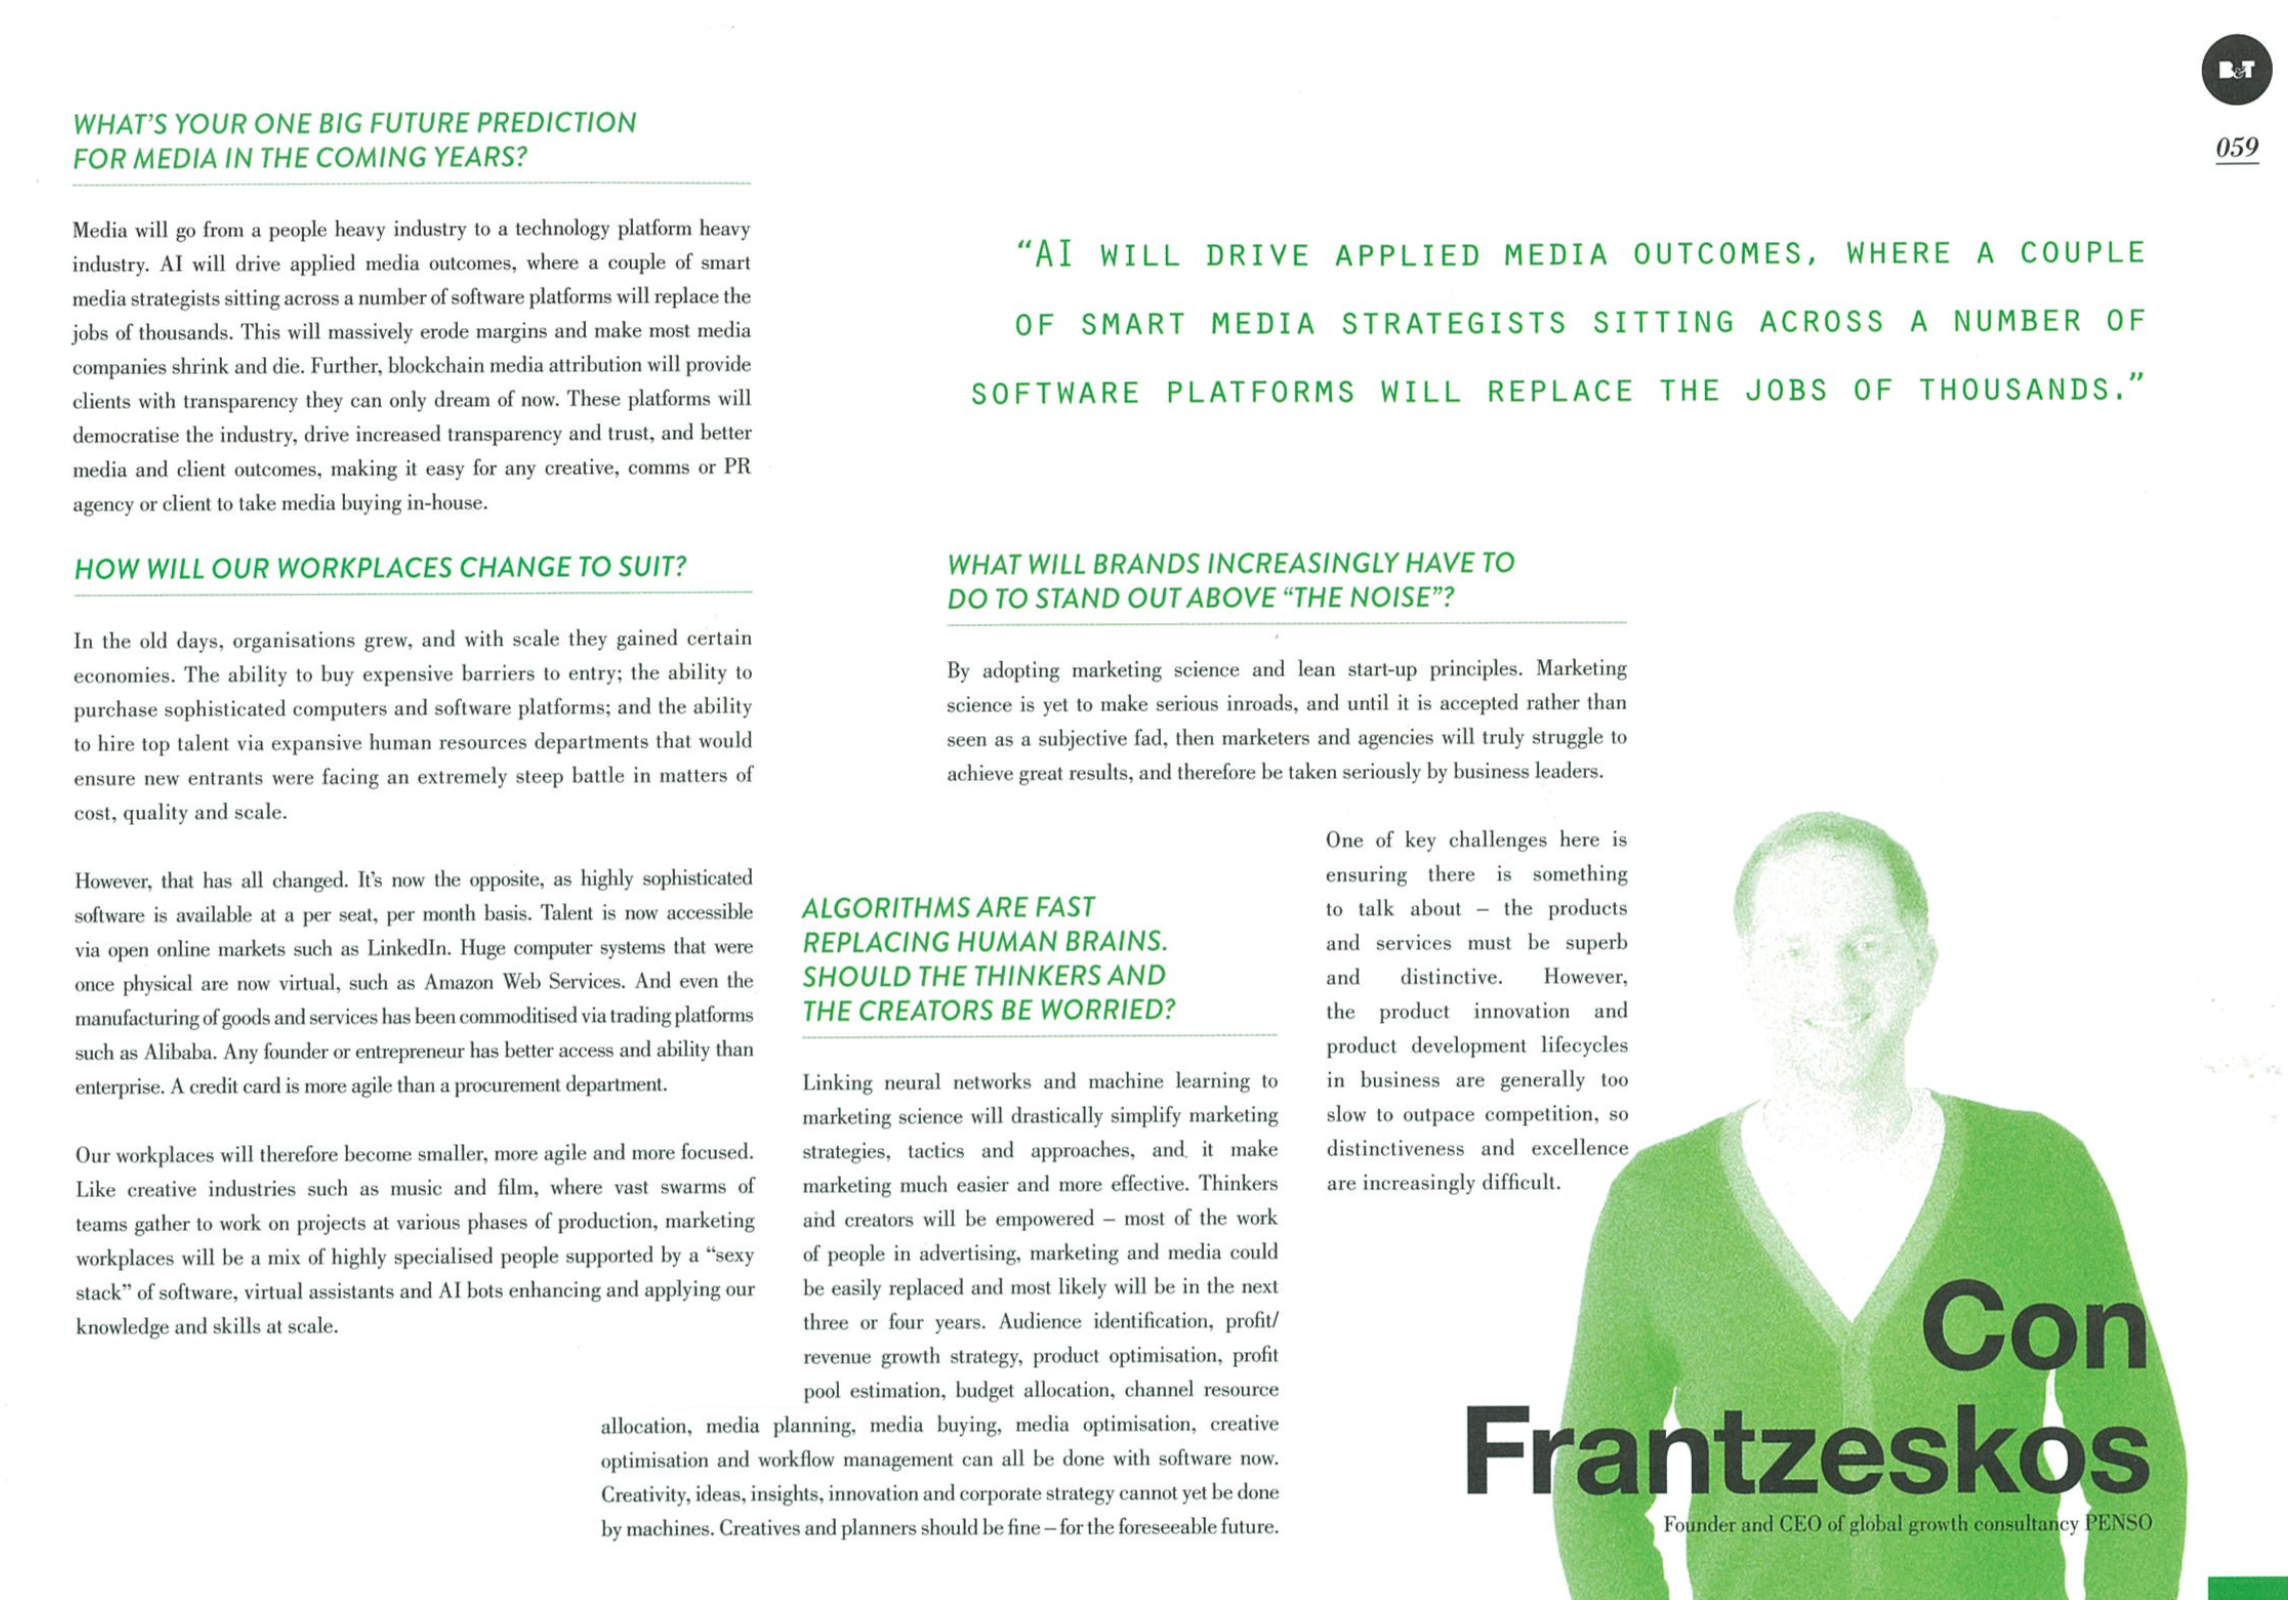 Con Frantzeskos on marketing strategy and trends